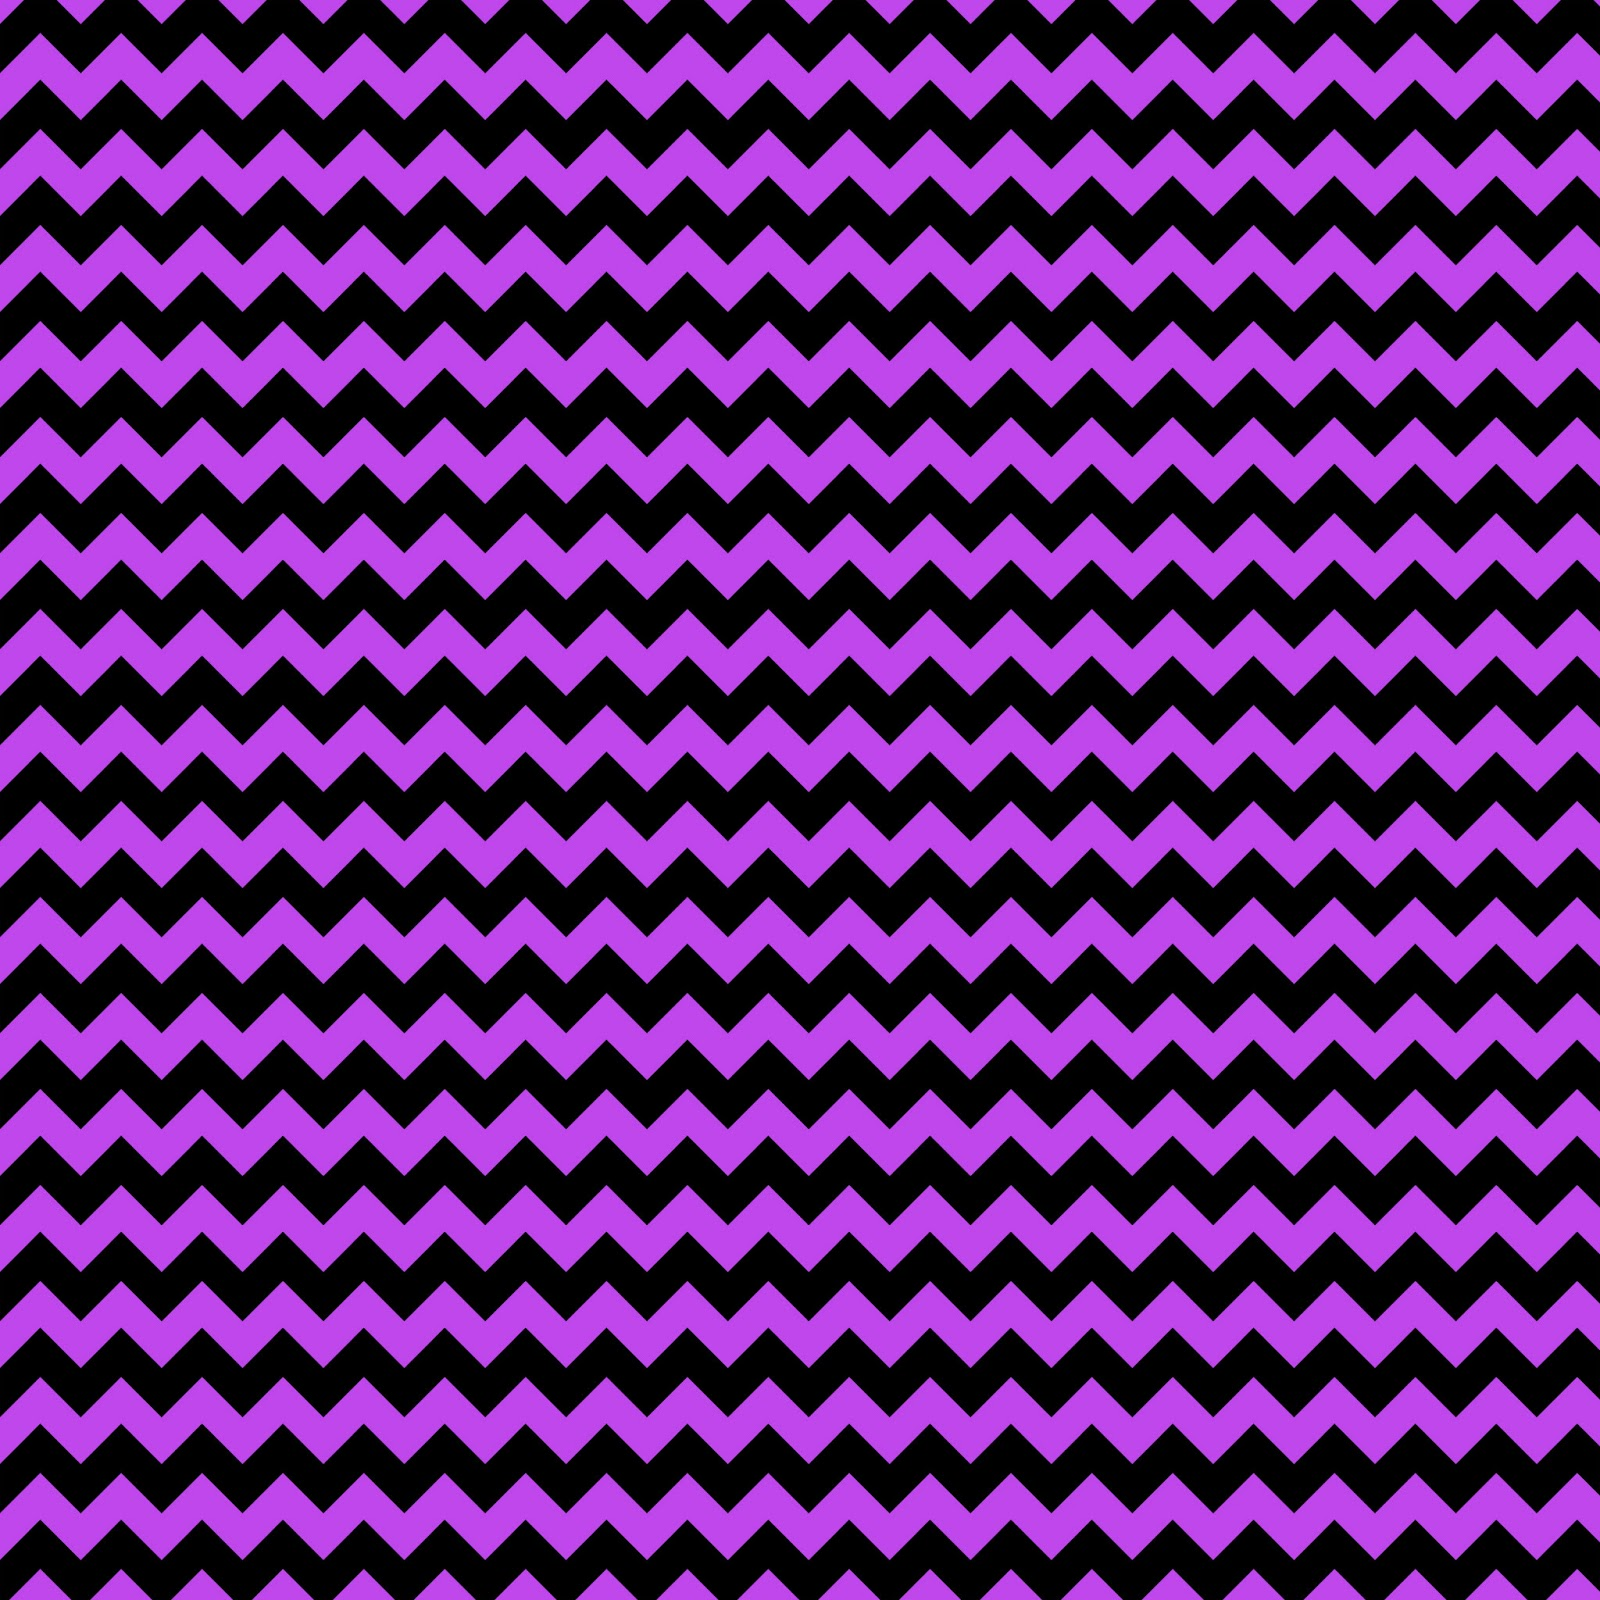 Doodlecraft: FREE Zig Zag Chevron Background patterns!